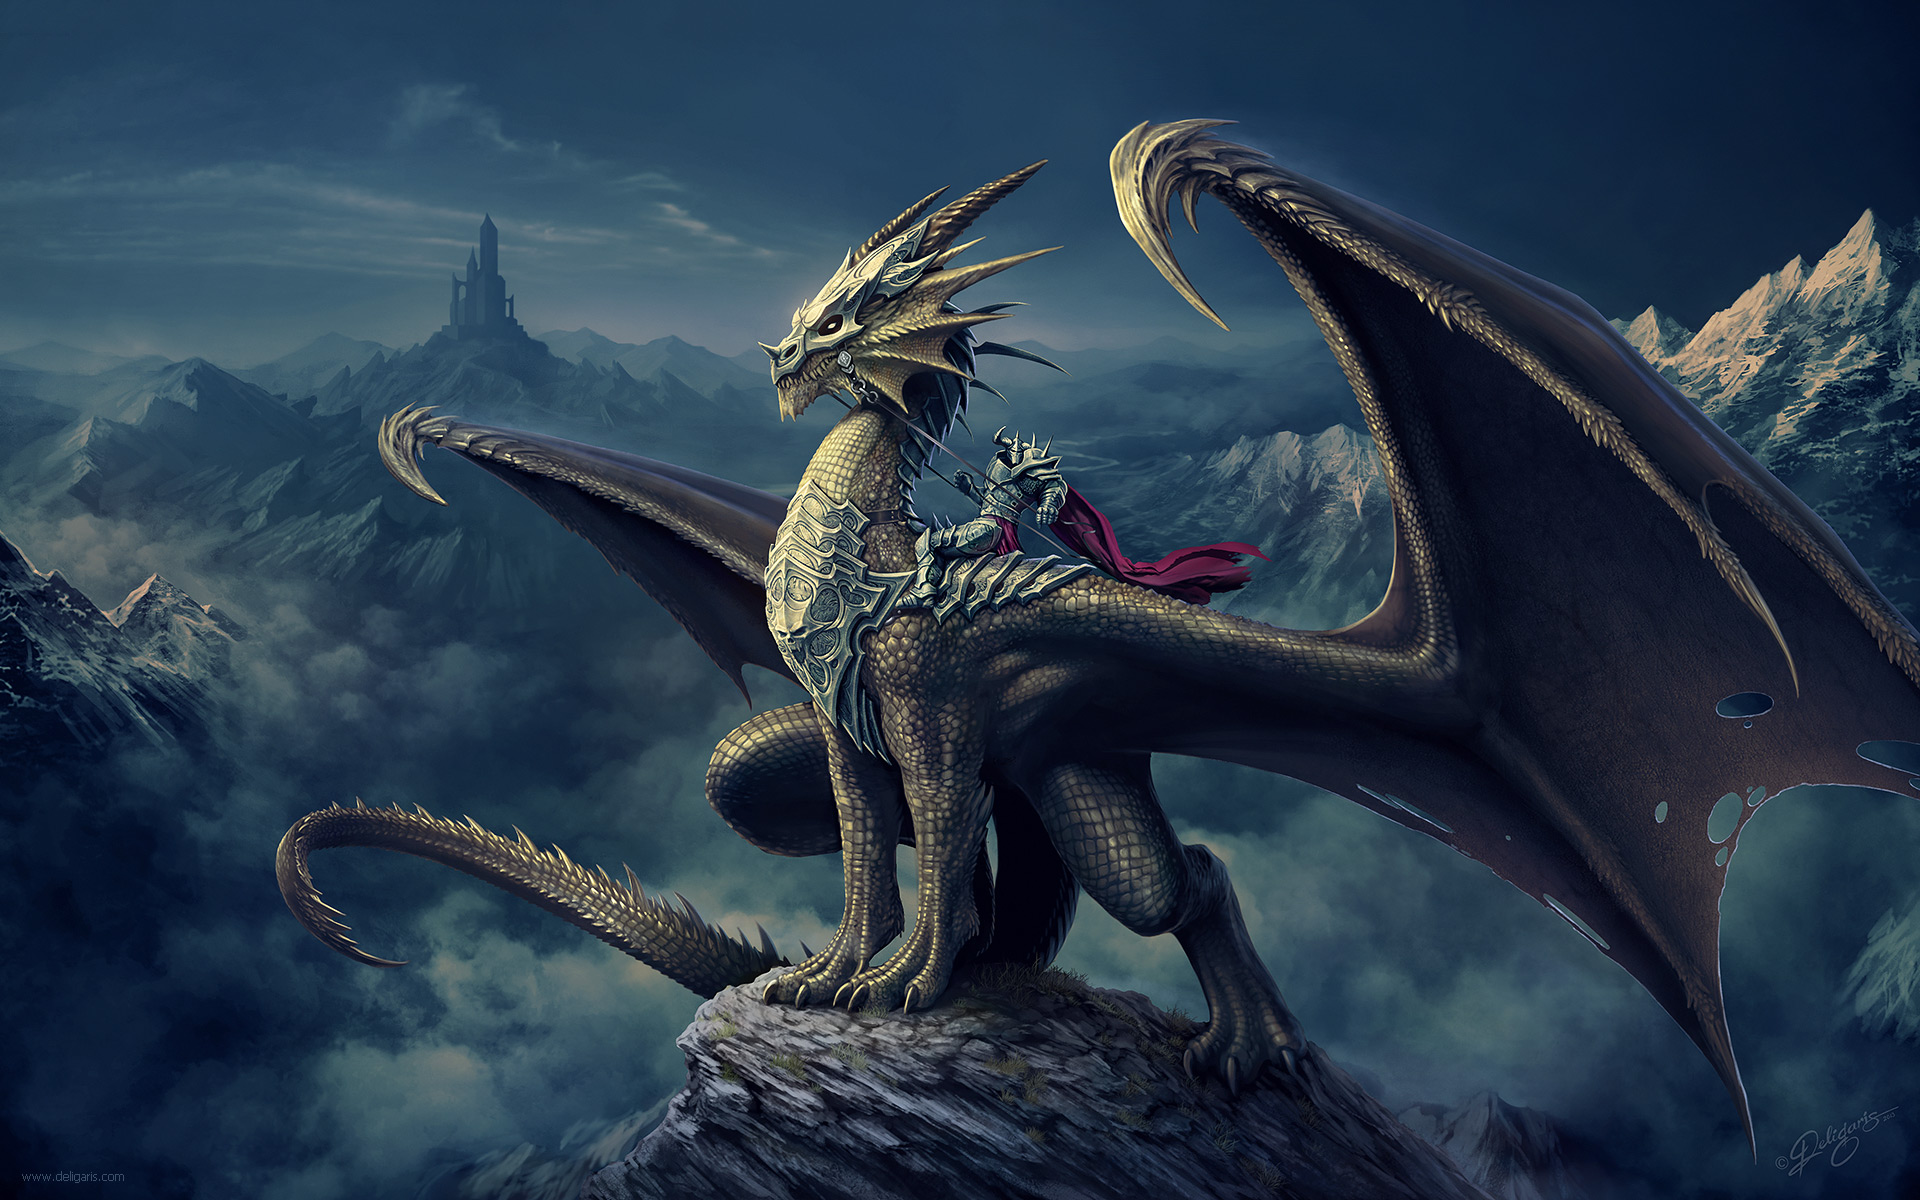 dragon_rider_by_deligaris-d65o1mf.jpg